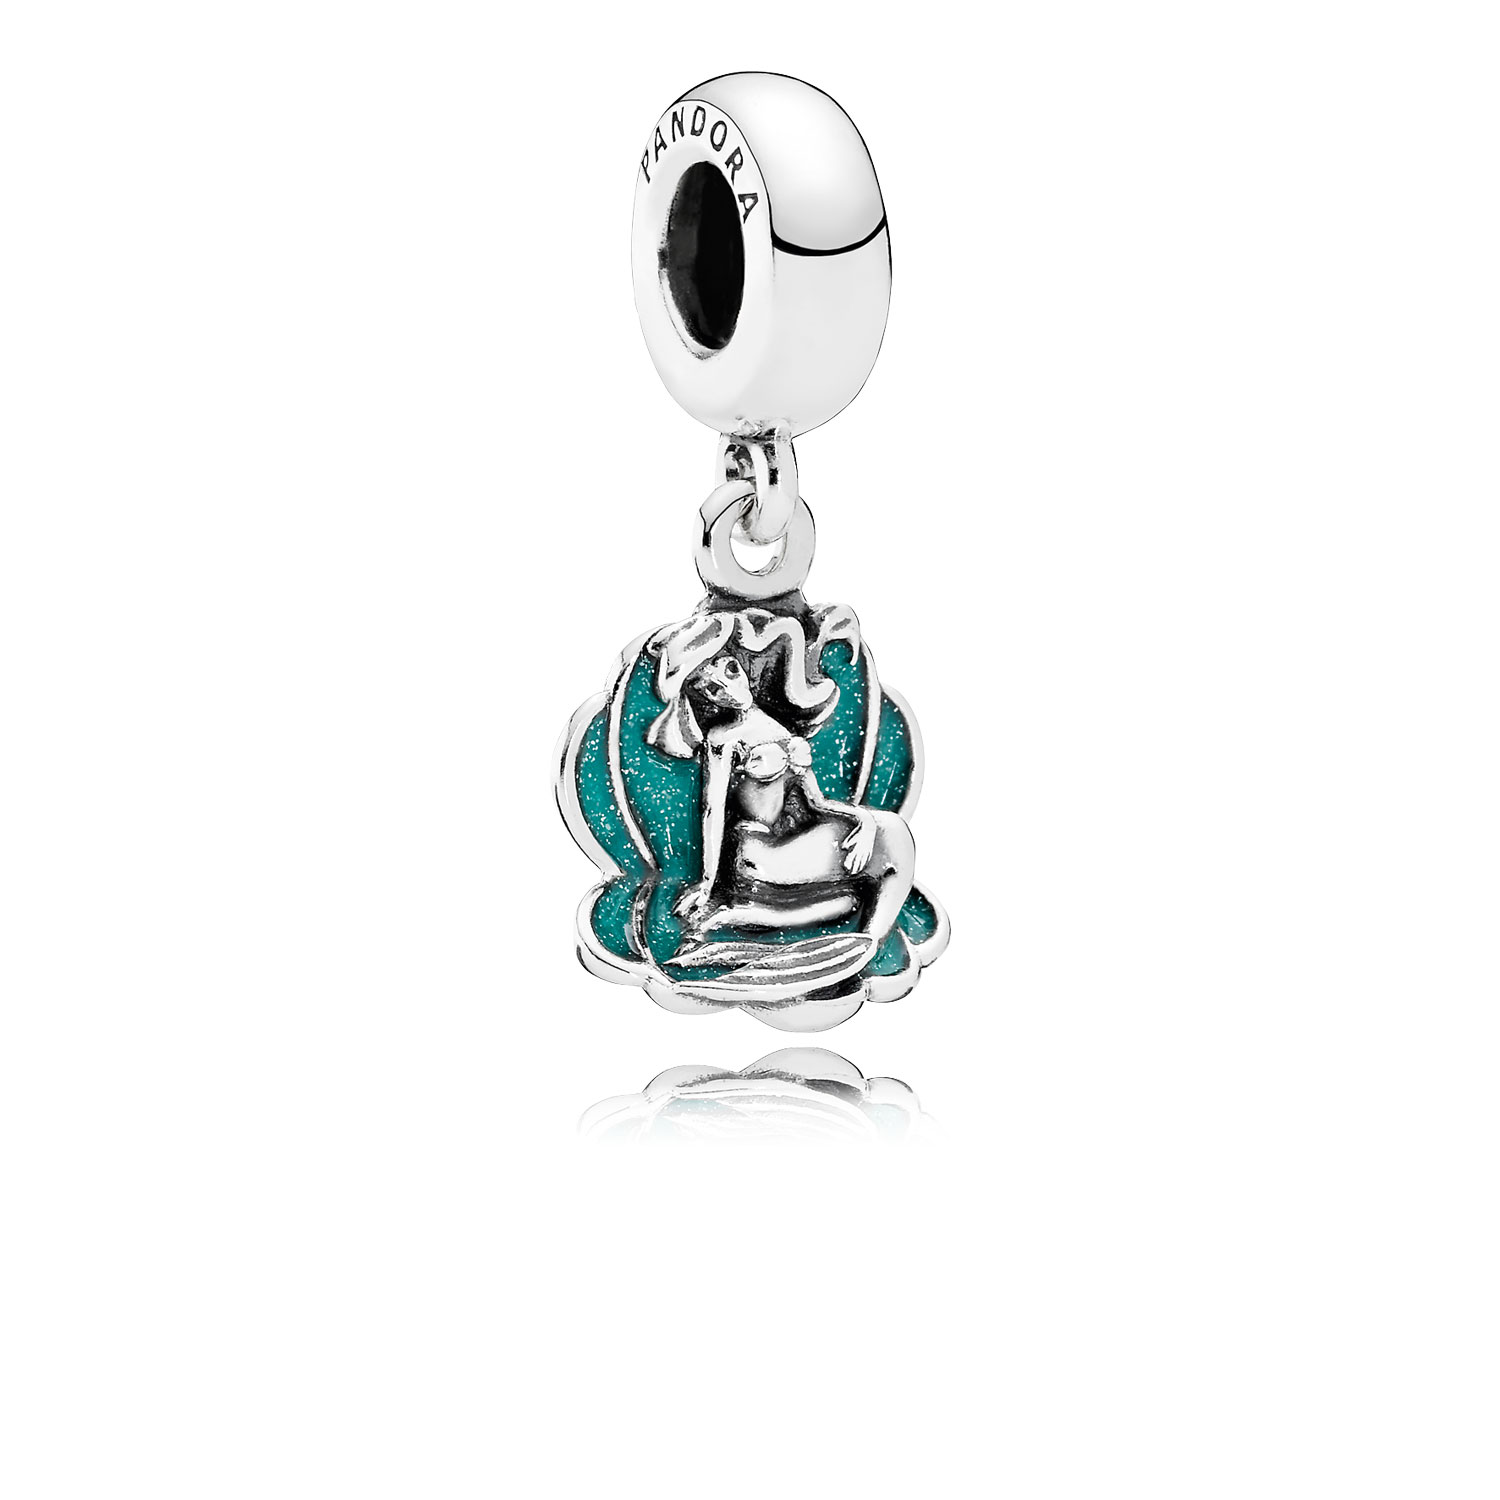 Disney, Ariel & Sea Shell Dangle Charm, Glittery Seafoam Green Enamel